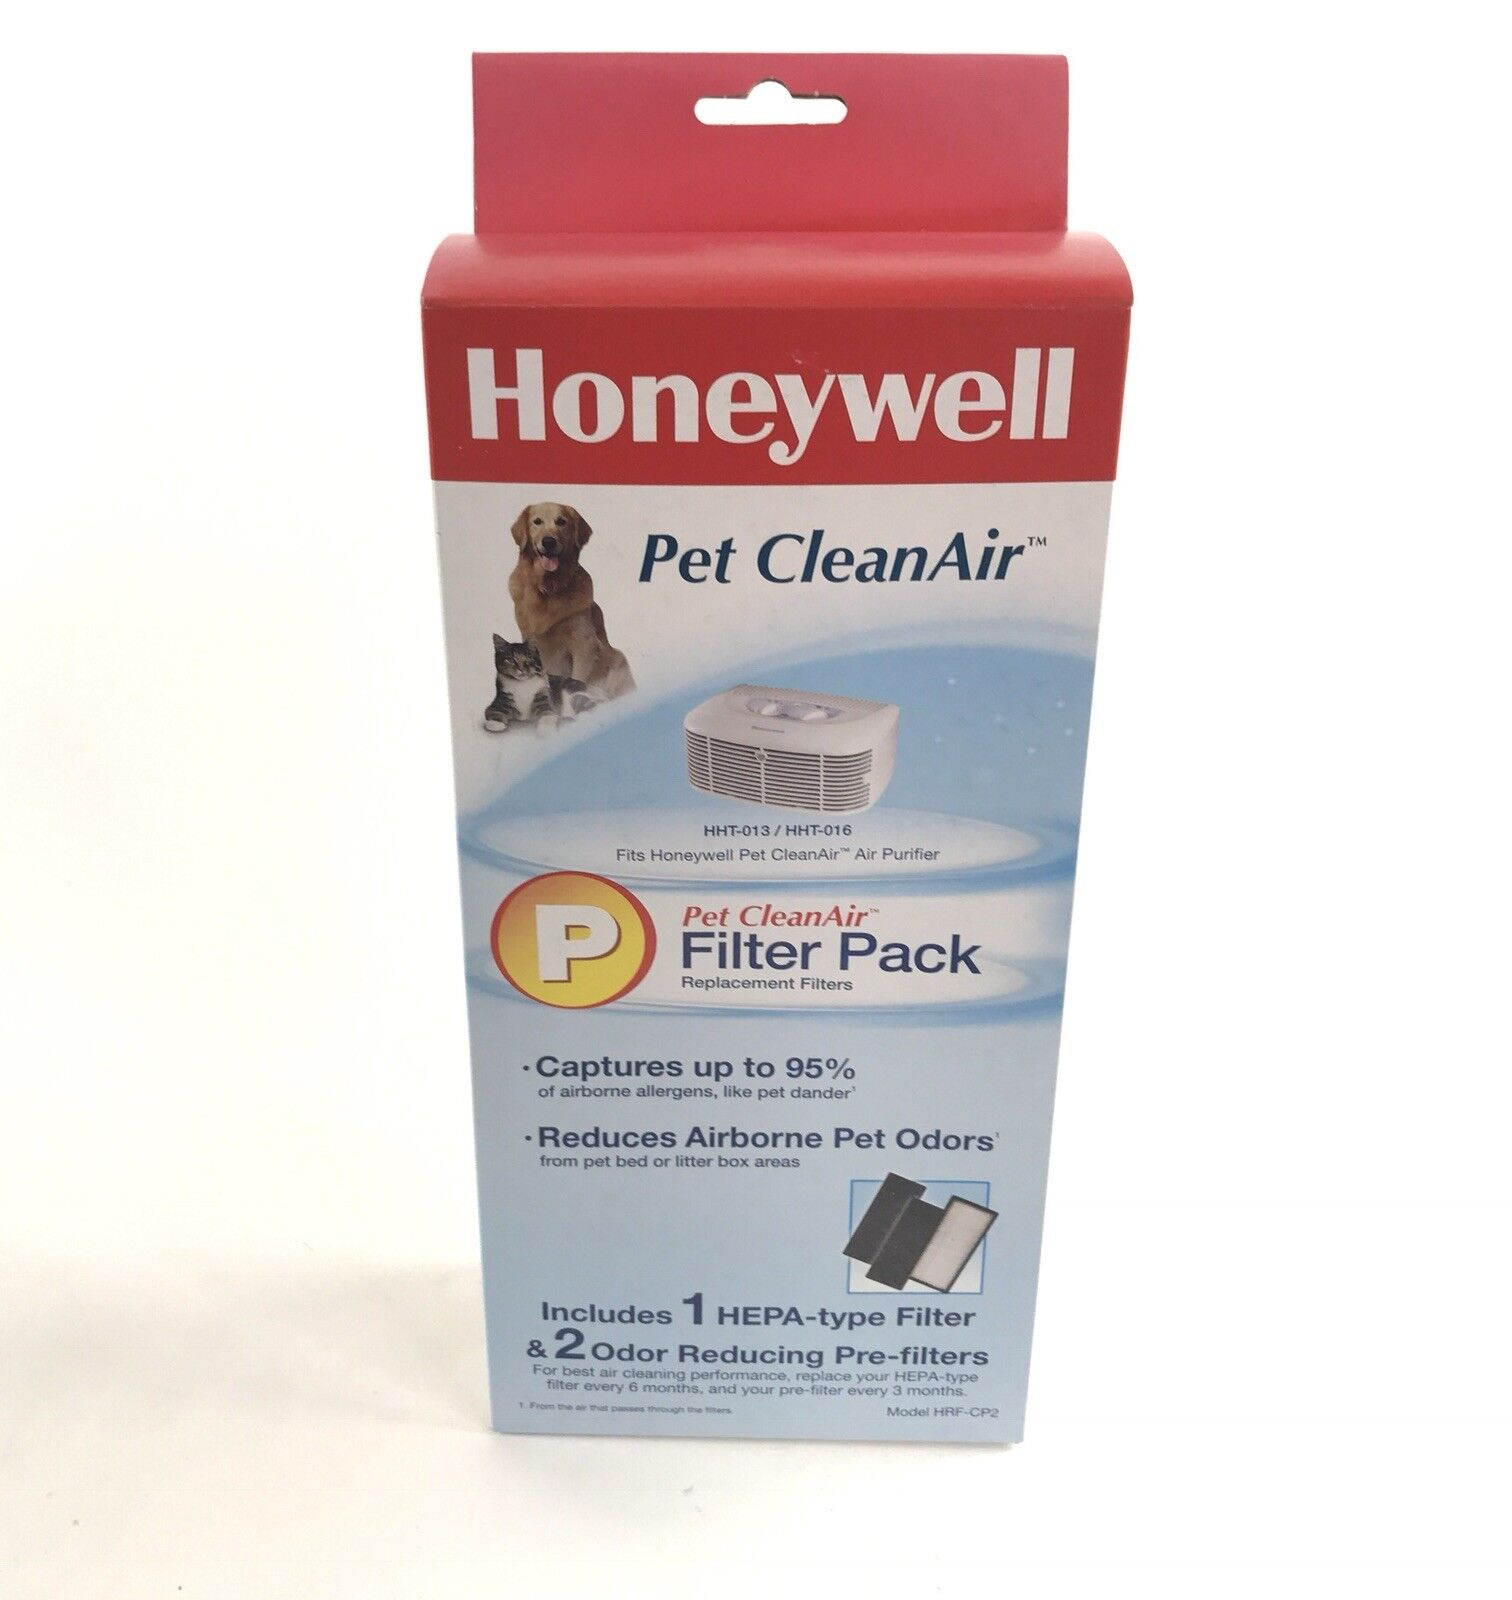 Pet CleanAir Replacement Filter Combo Pack Honeywell HRF-CP2